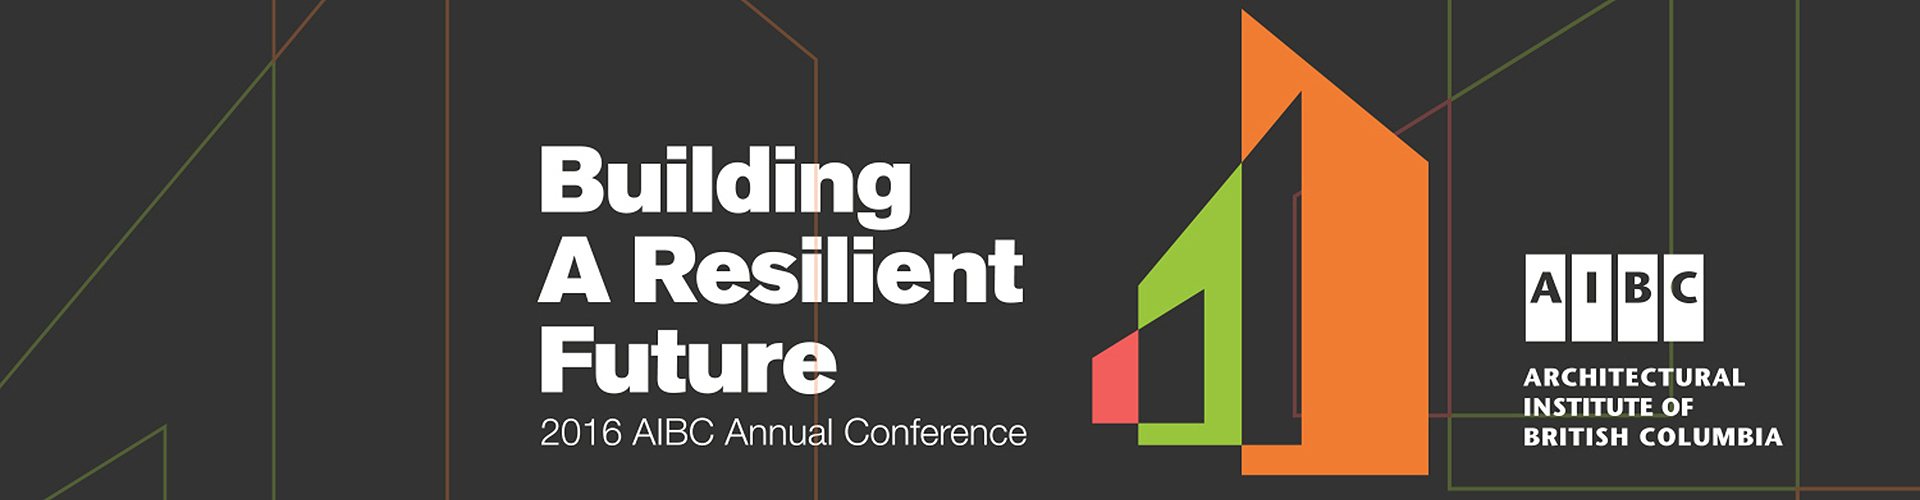 2016 AIBC Annual Conference May 16-18